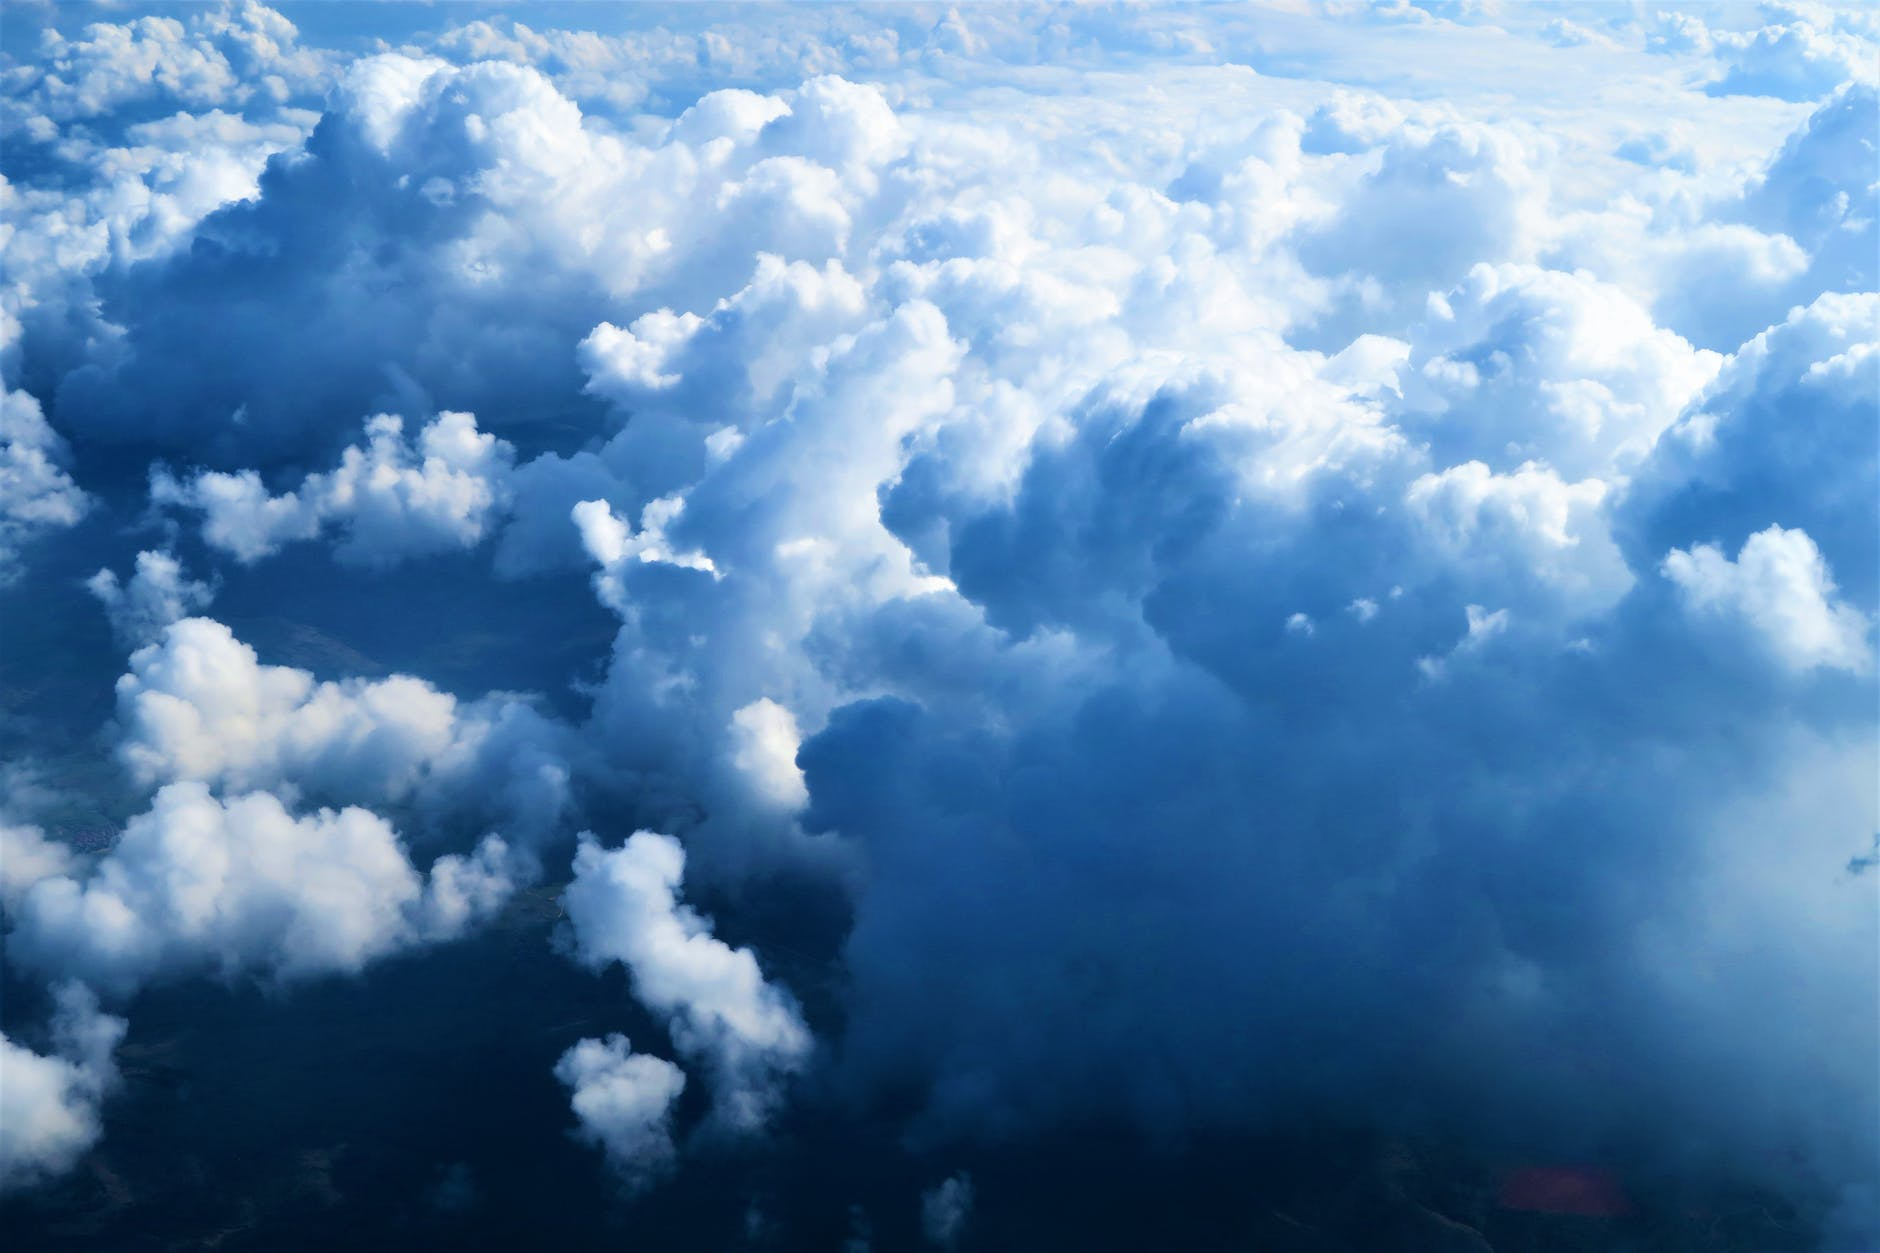 A sky full of clouds, seen from above the clouds.